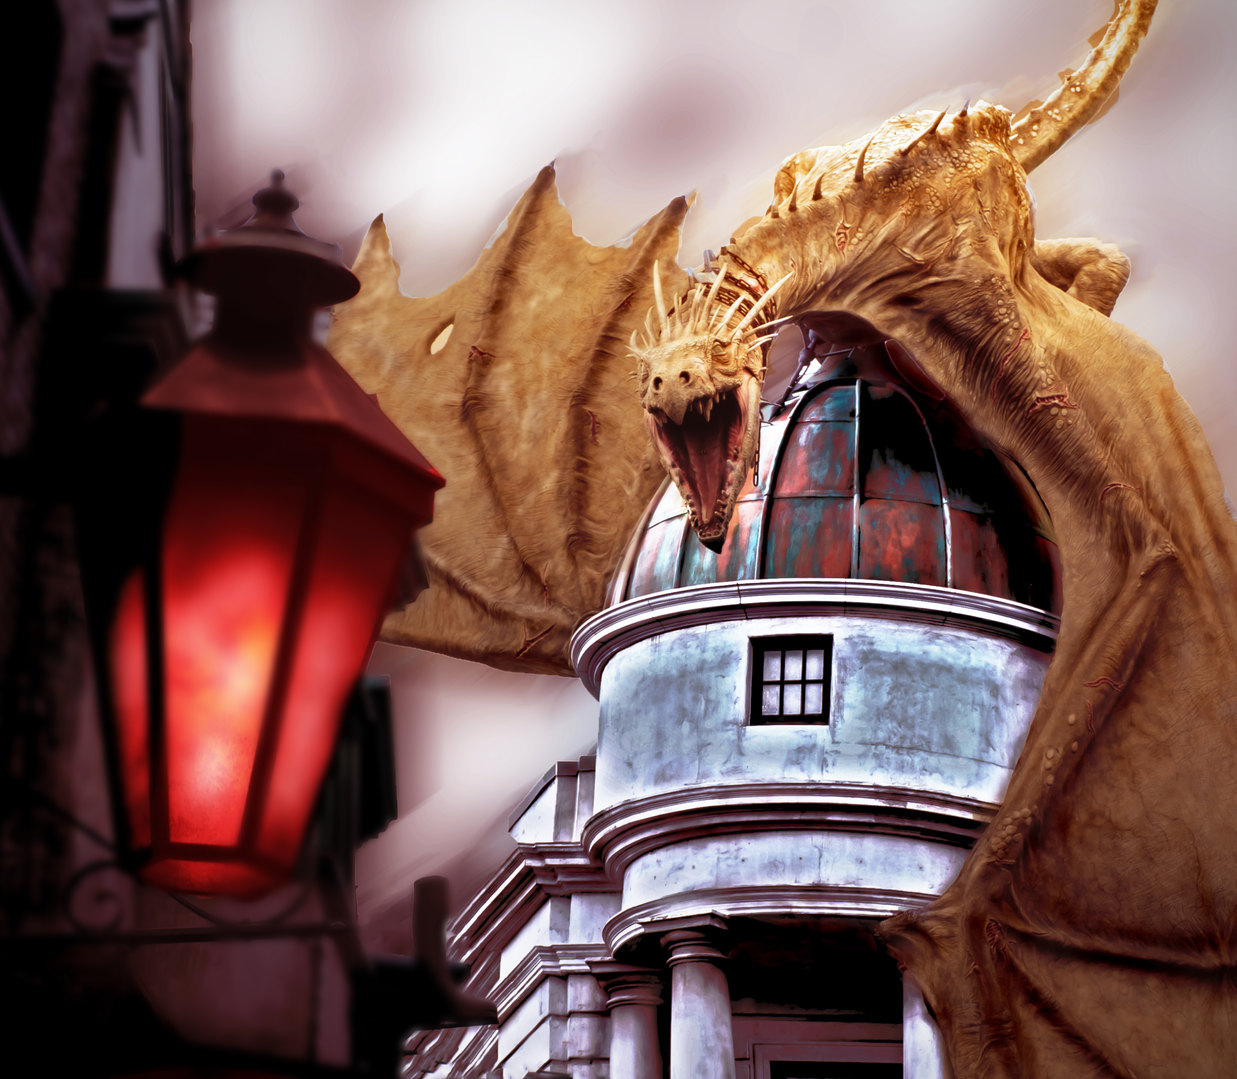 Diagon Alley - Universal Orlando